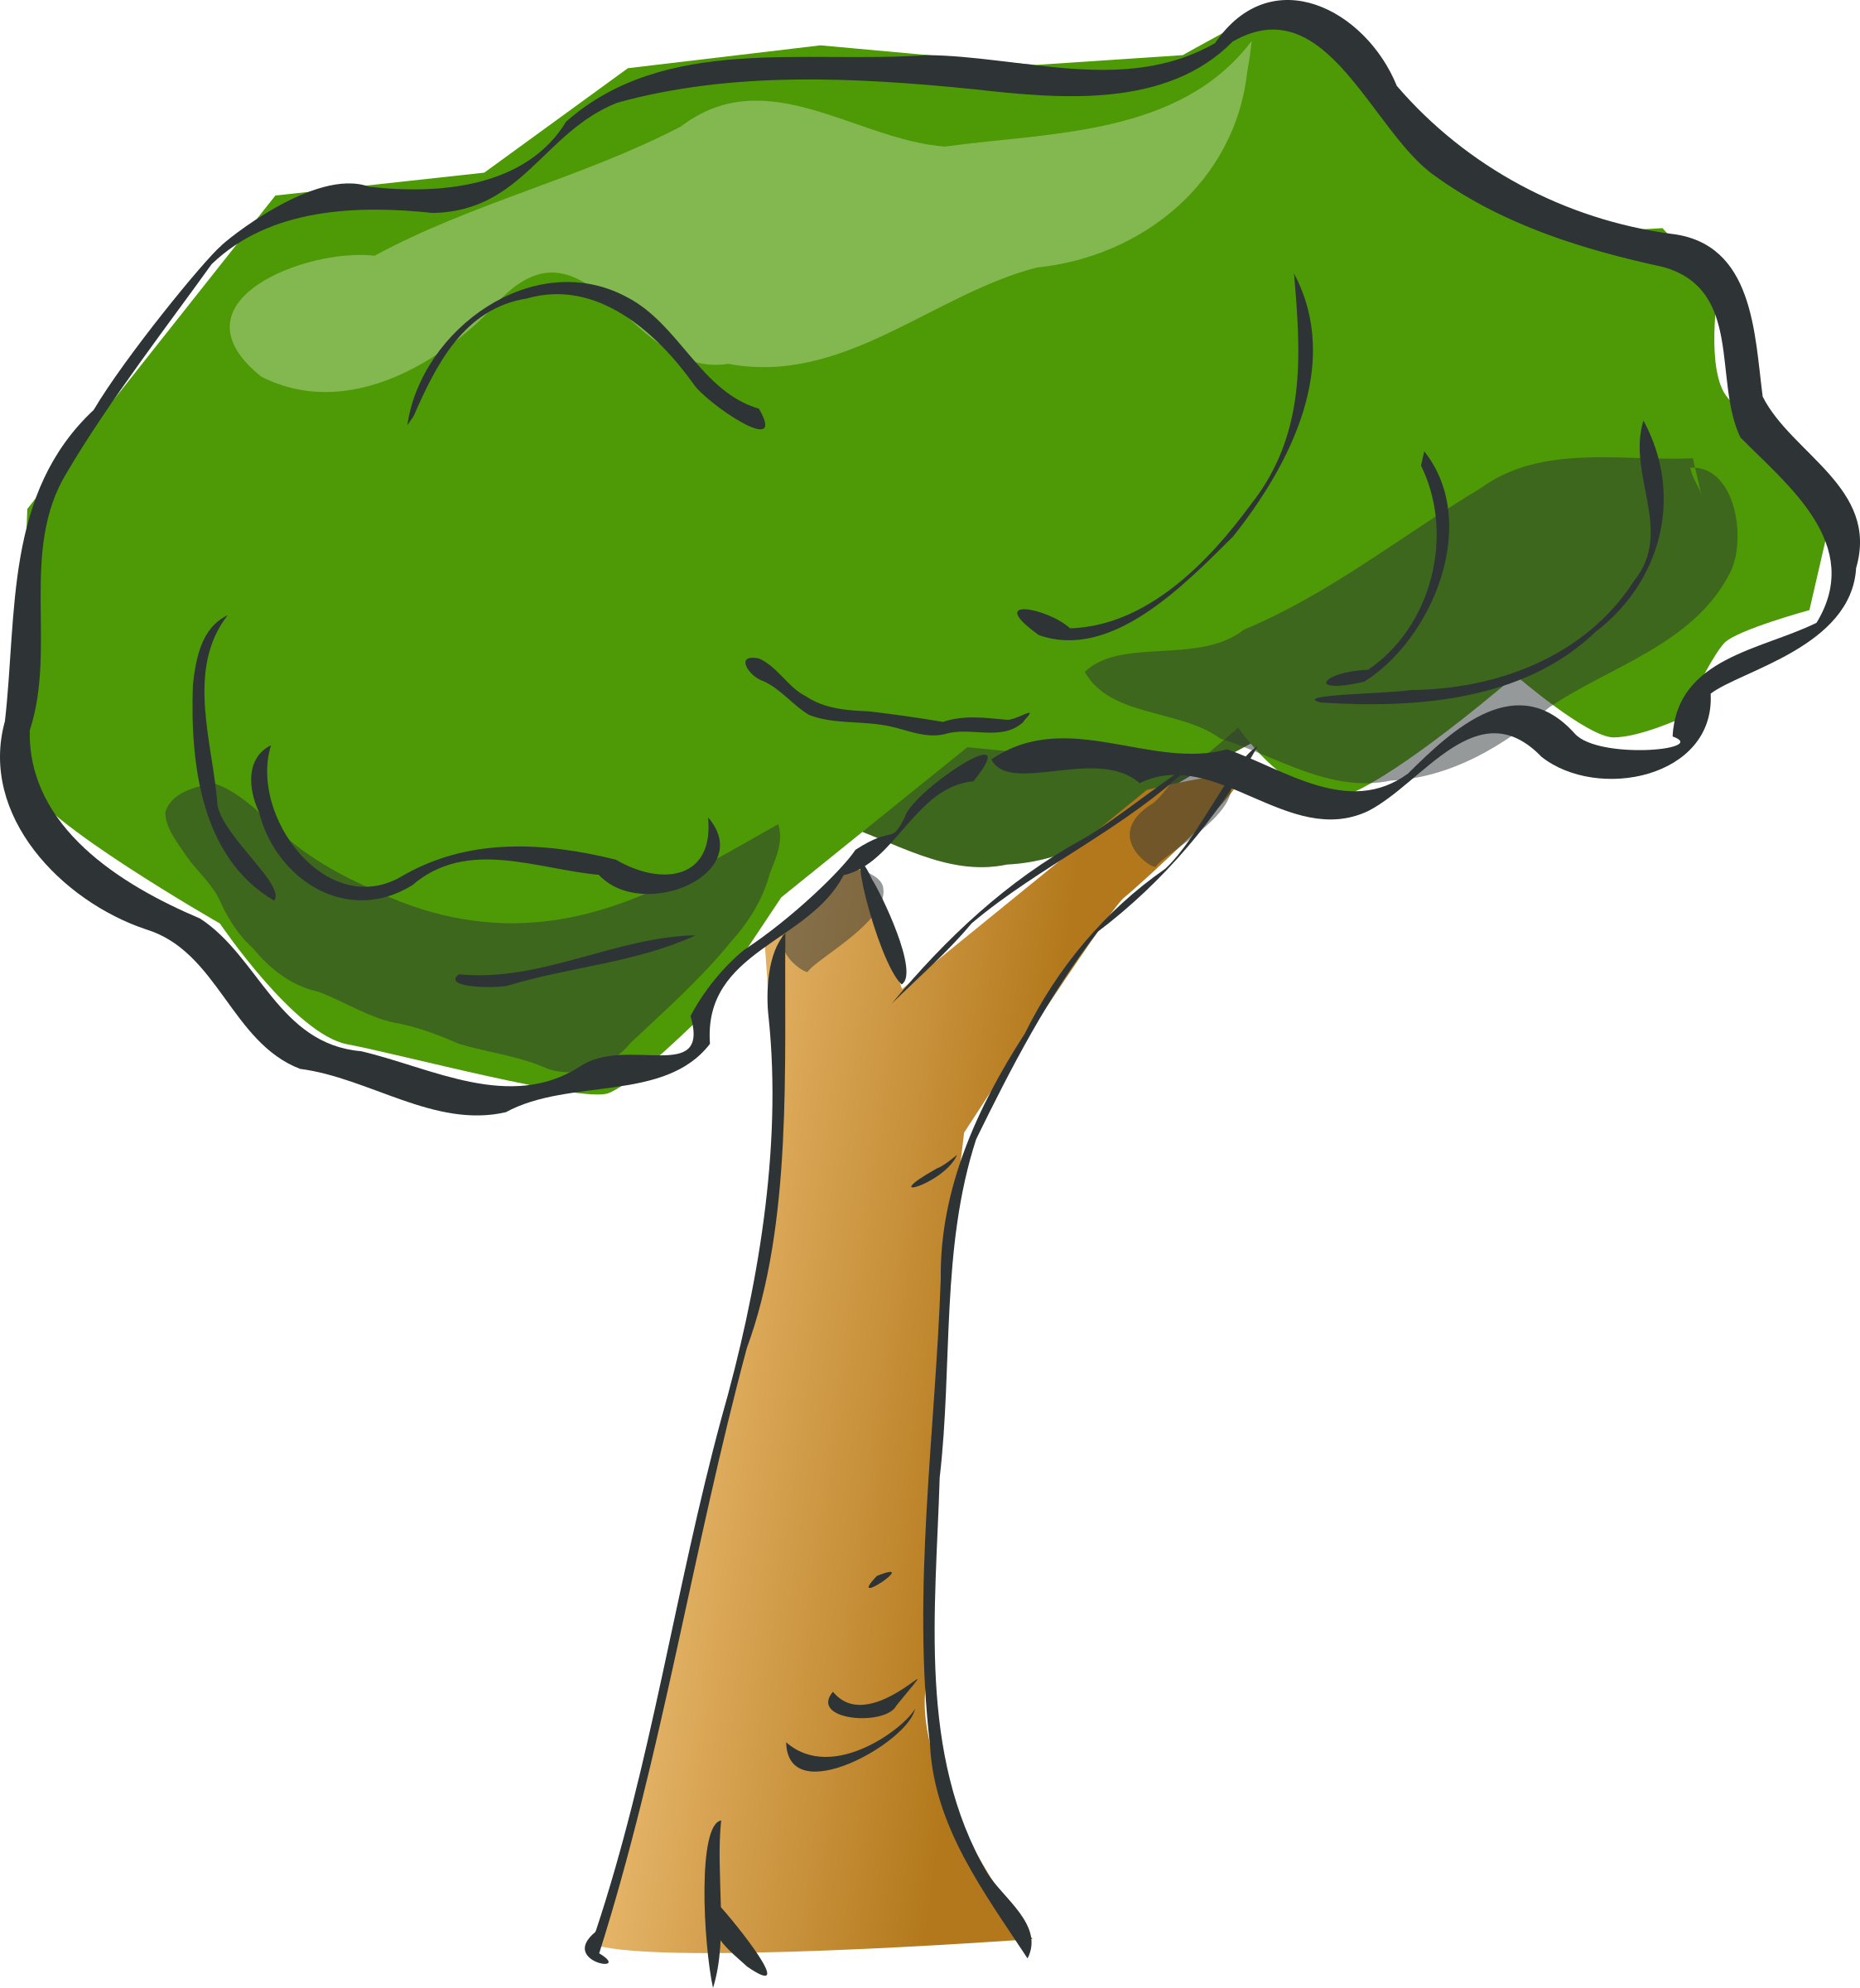 Clipart tree cartoon.